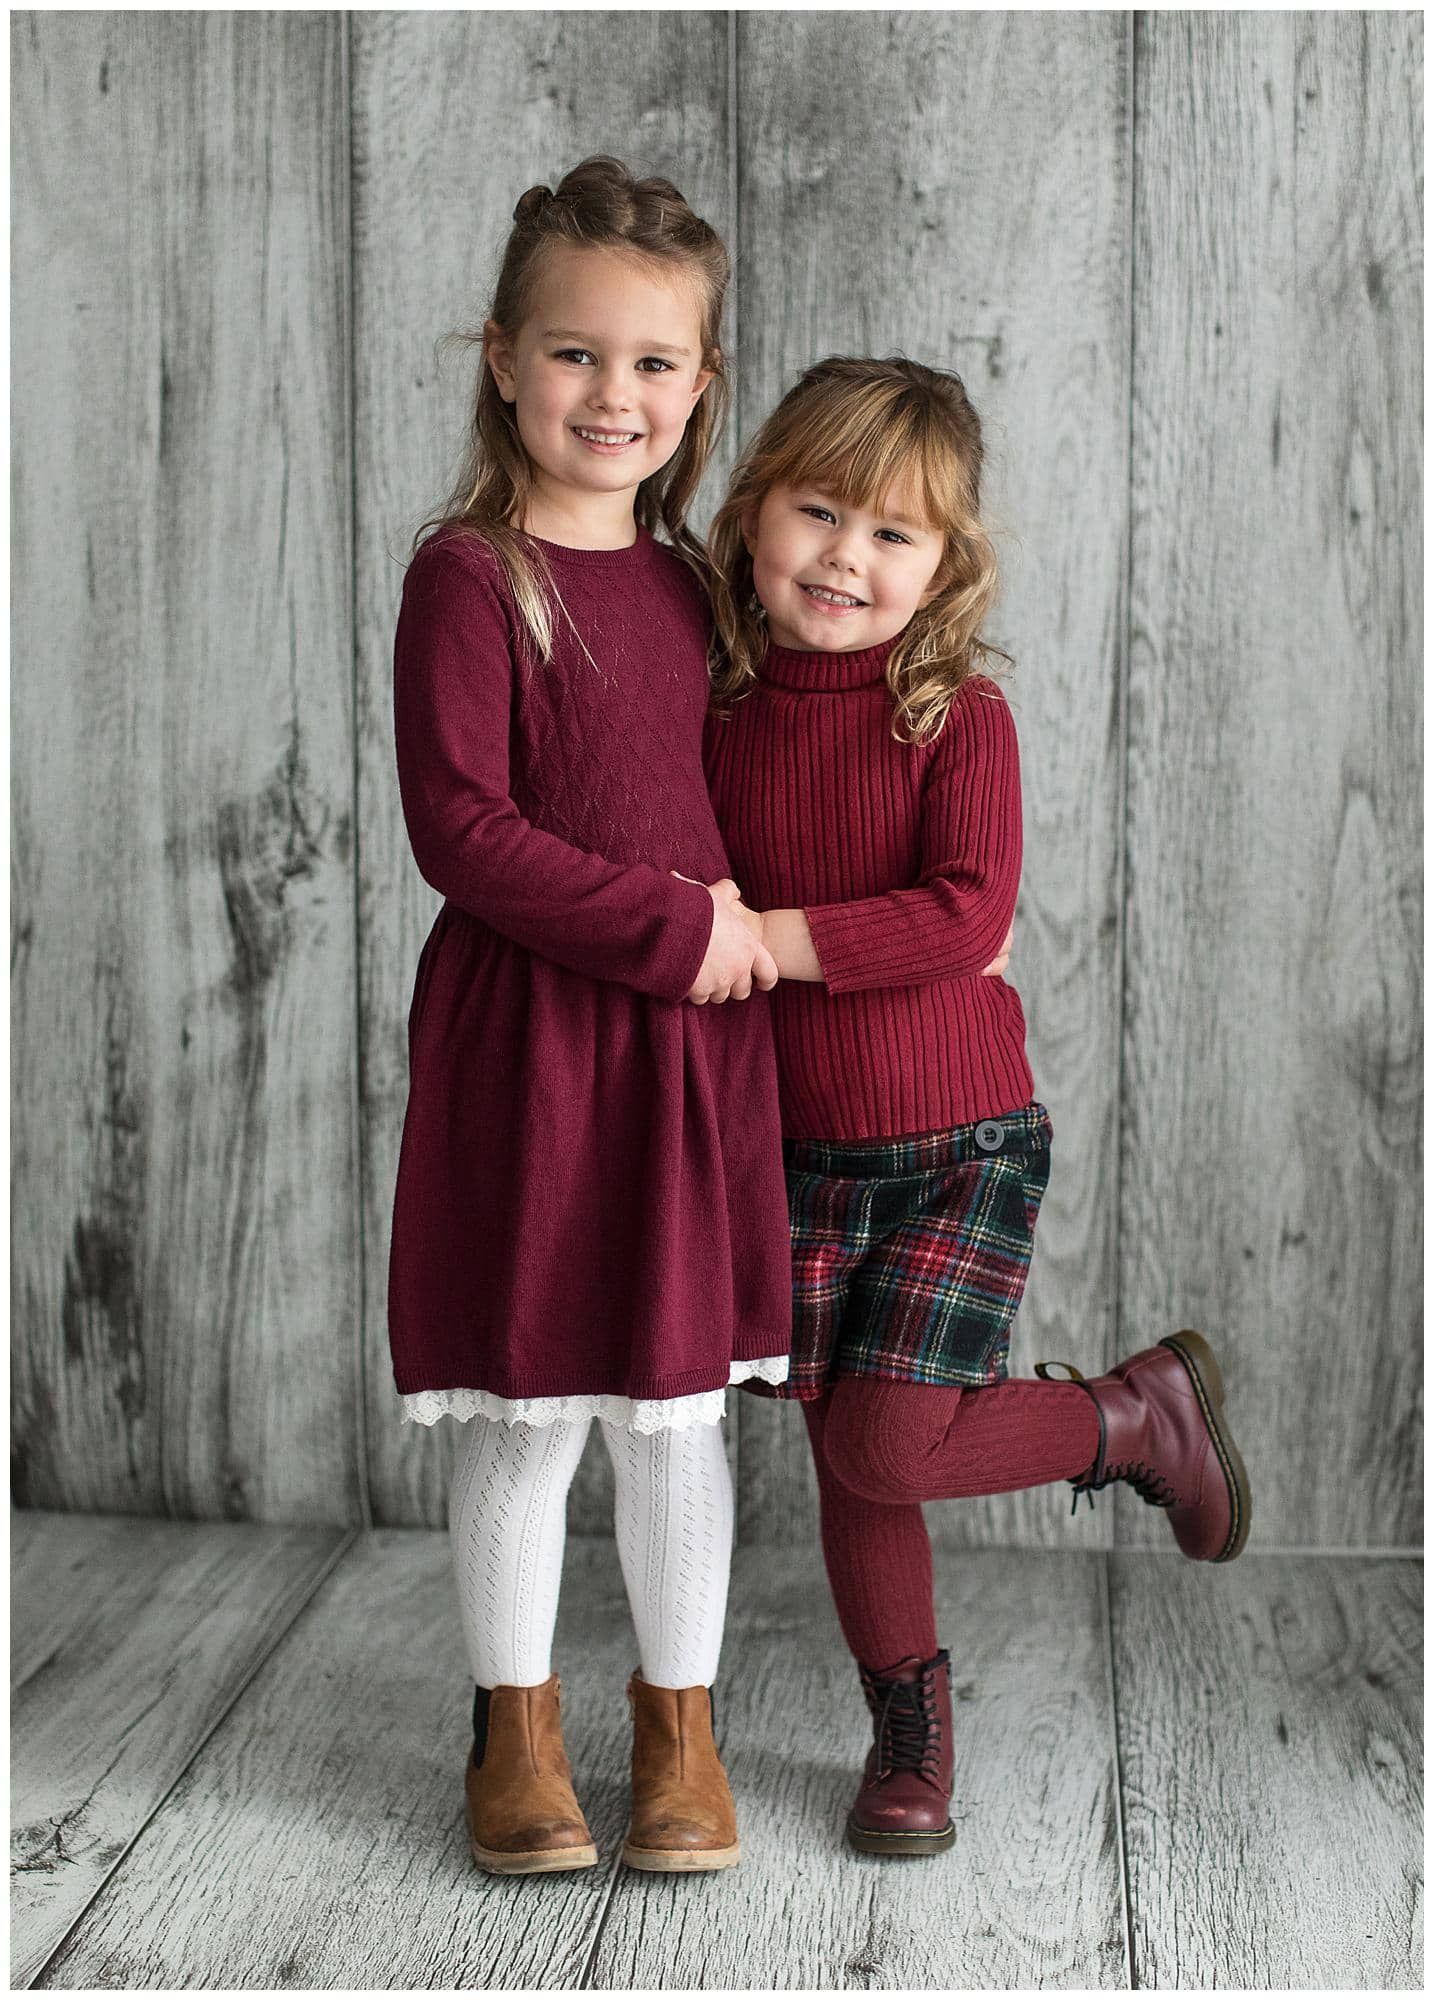 Two sisters wearing winter clothes pose for a Portrait Photoshoot on a grey wood background